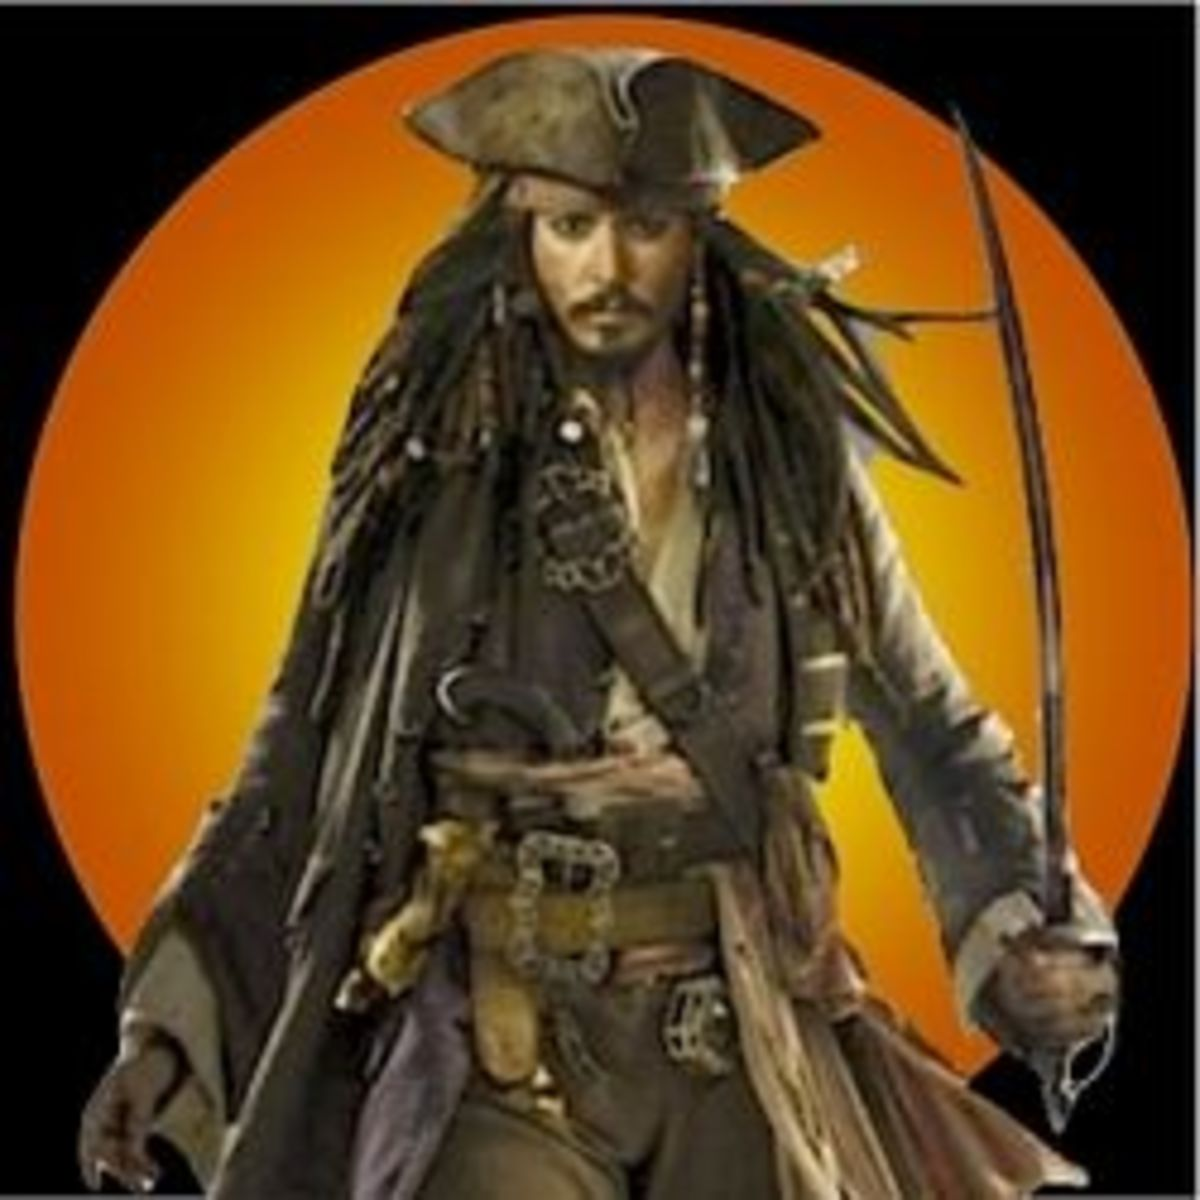 Johnny Depp as Captain Jack Sparrow Adapted from Pirates of the Caribbean: At World's End Life Size Stand-up Poster.